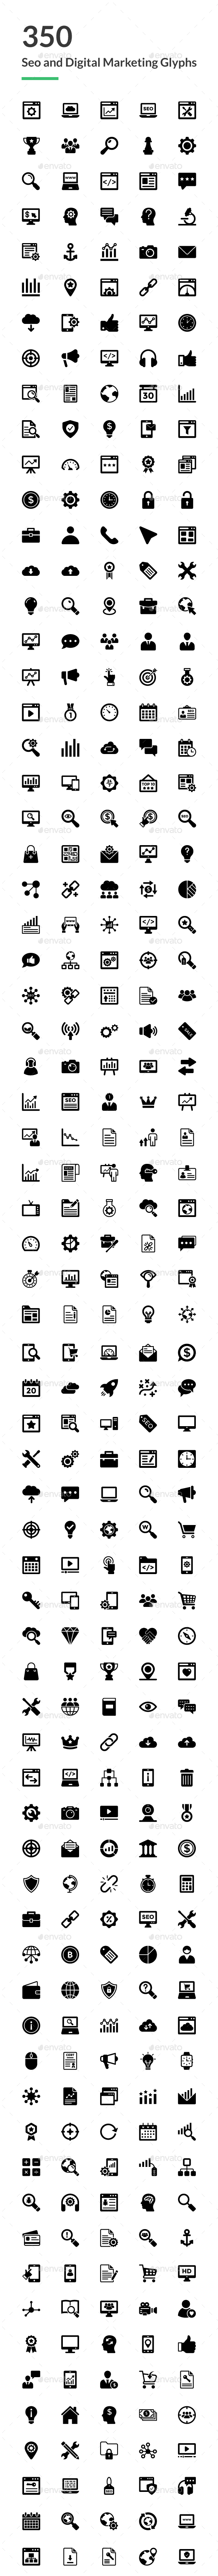 GraphicRiver 350 SEO and Digital Marketing Icons 20751861